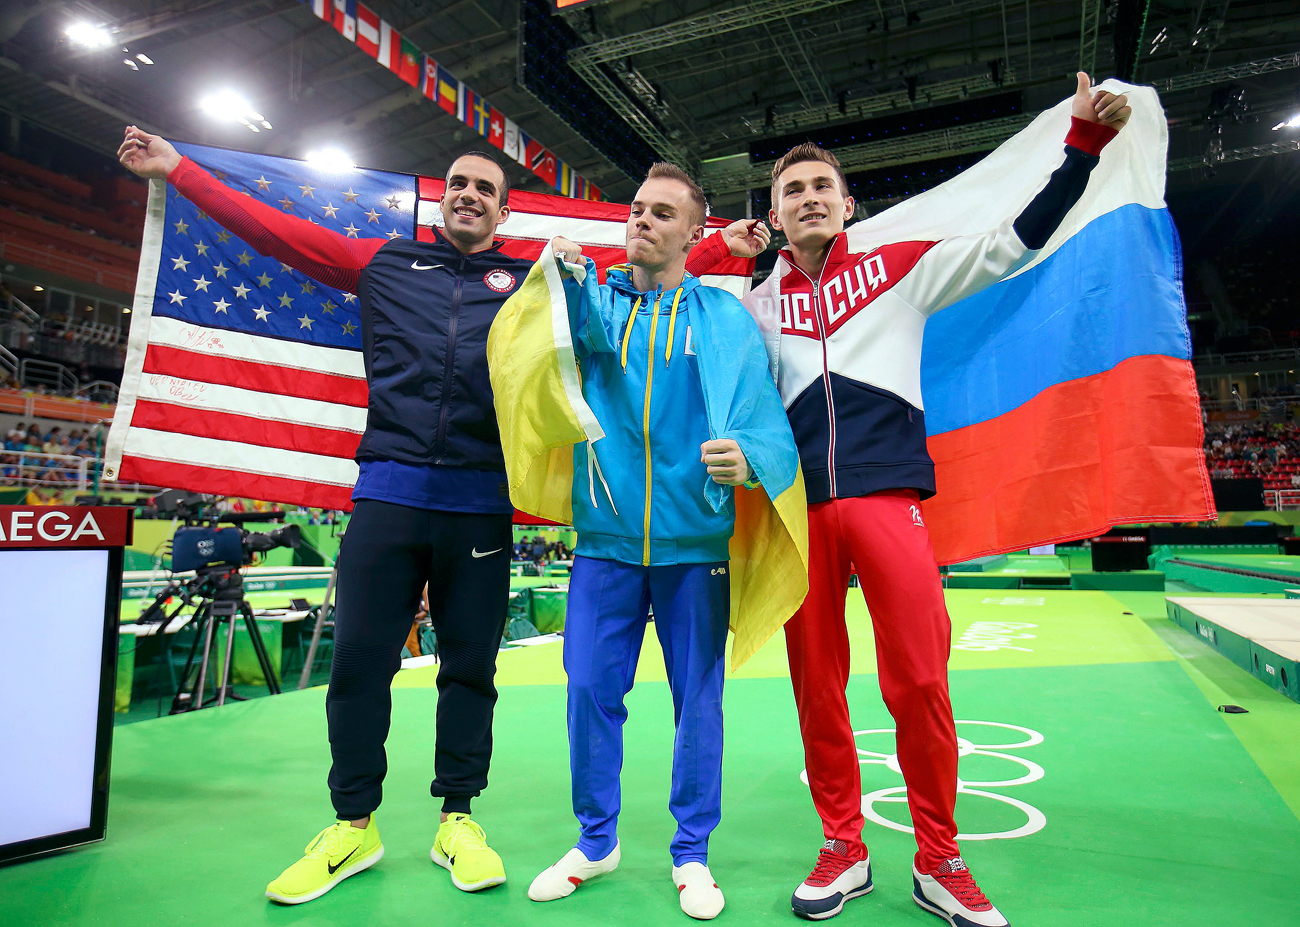 Athletes Oleg Verniaiev of Ukraine, Danell Leyva of USA, and David Belyavskiy of Russia celebrate their victory in men's parallel bars final during the Rio Olympics in Brazil.